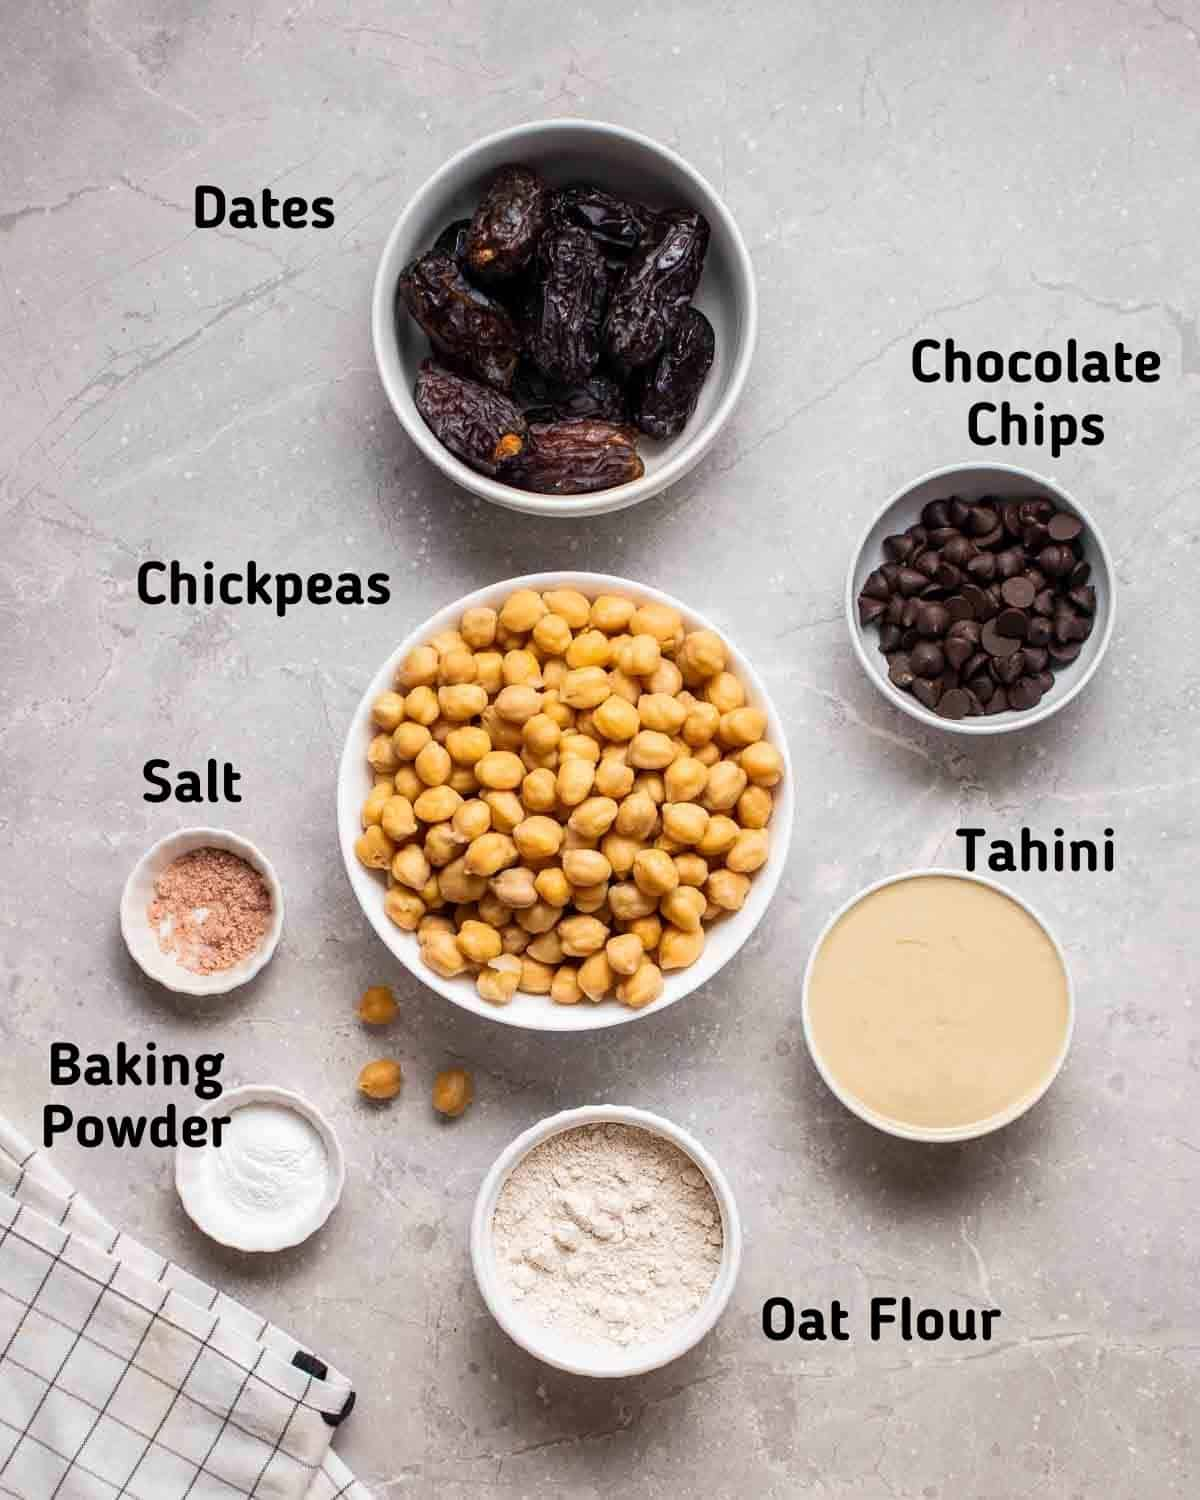 Ingredients needed like chickpeas, dates, tahini, flour, baking powder, salt and chocolate chips.